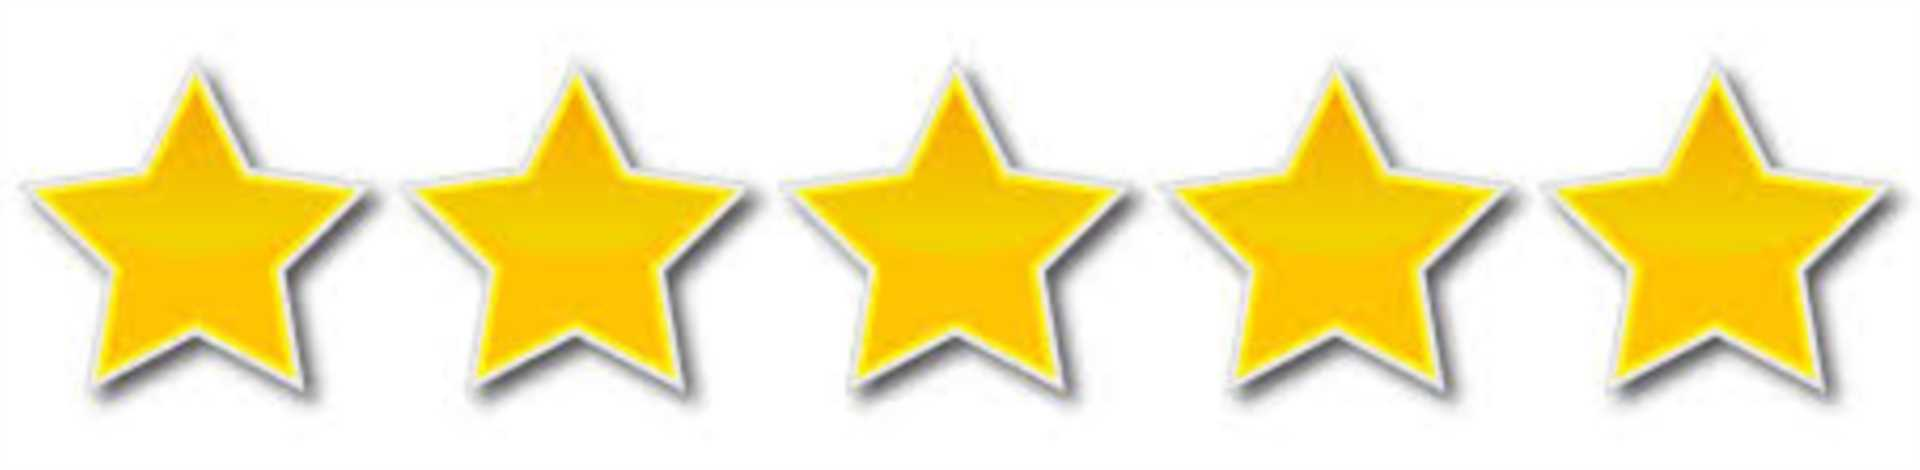 Why Online Reviews Can Help Improve Service & Build Trust For A Business